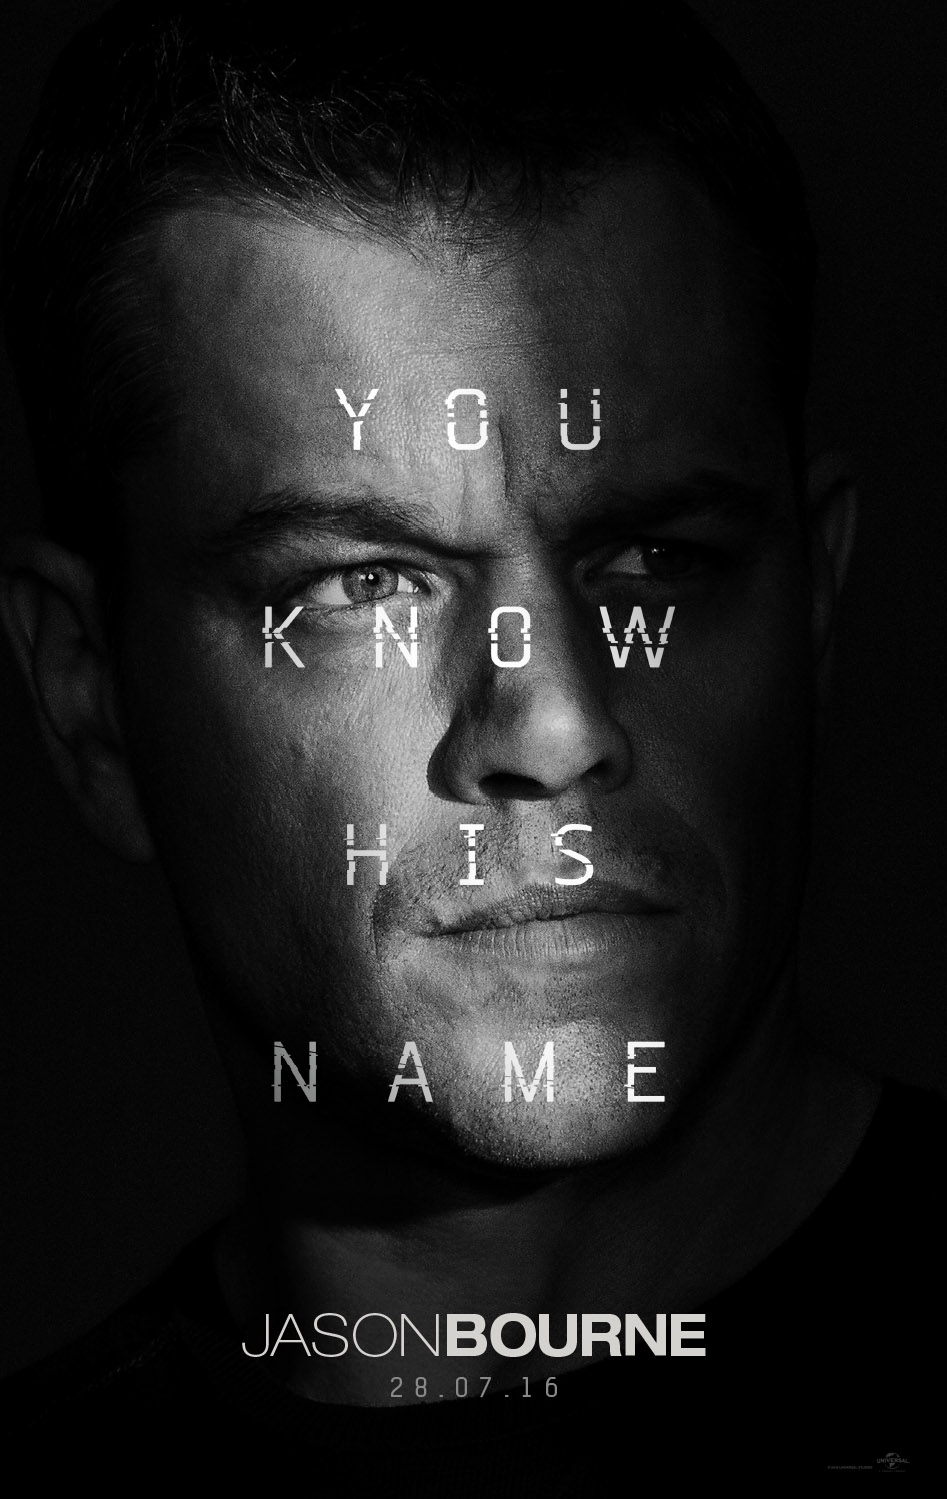 Jason Bourne poster, © 2016 Universal Pictures International